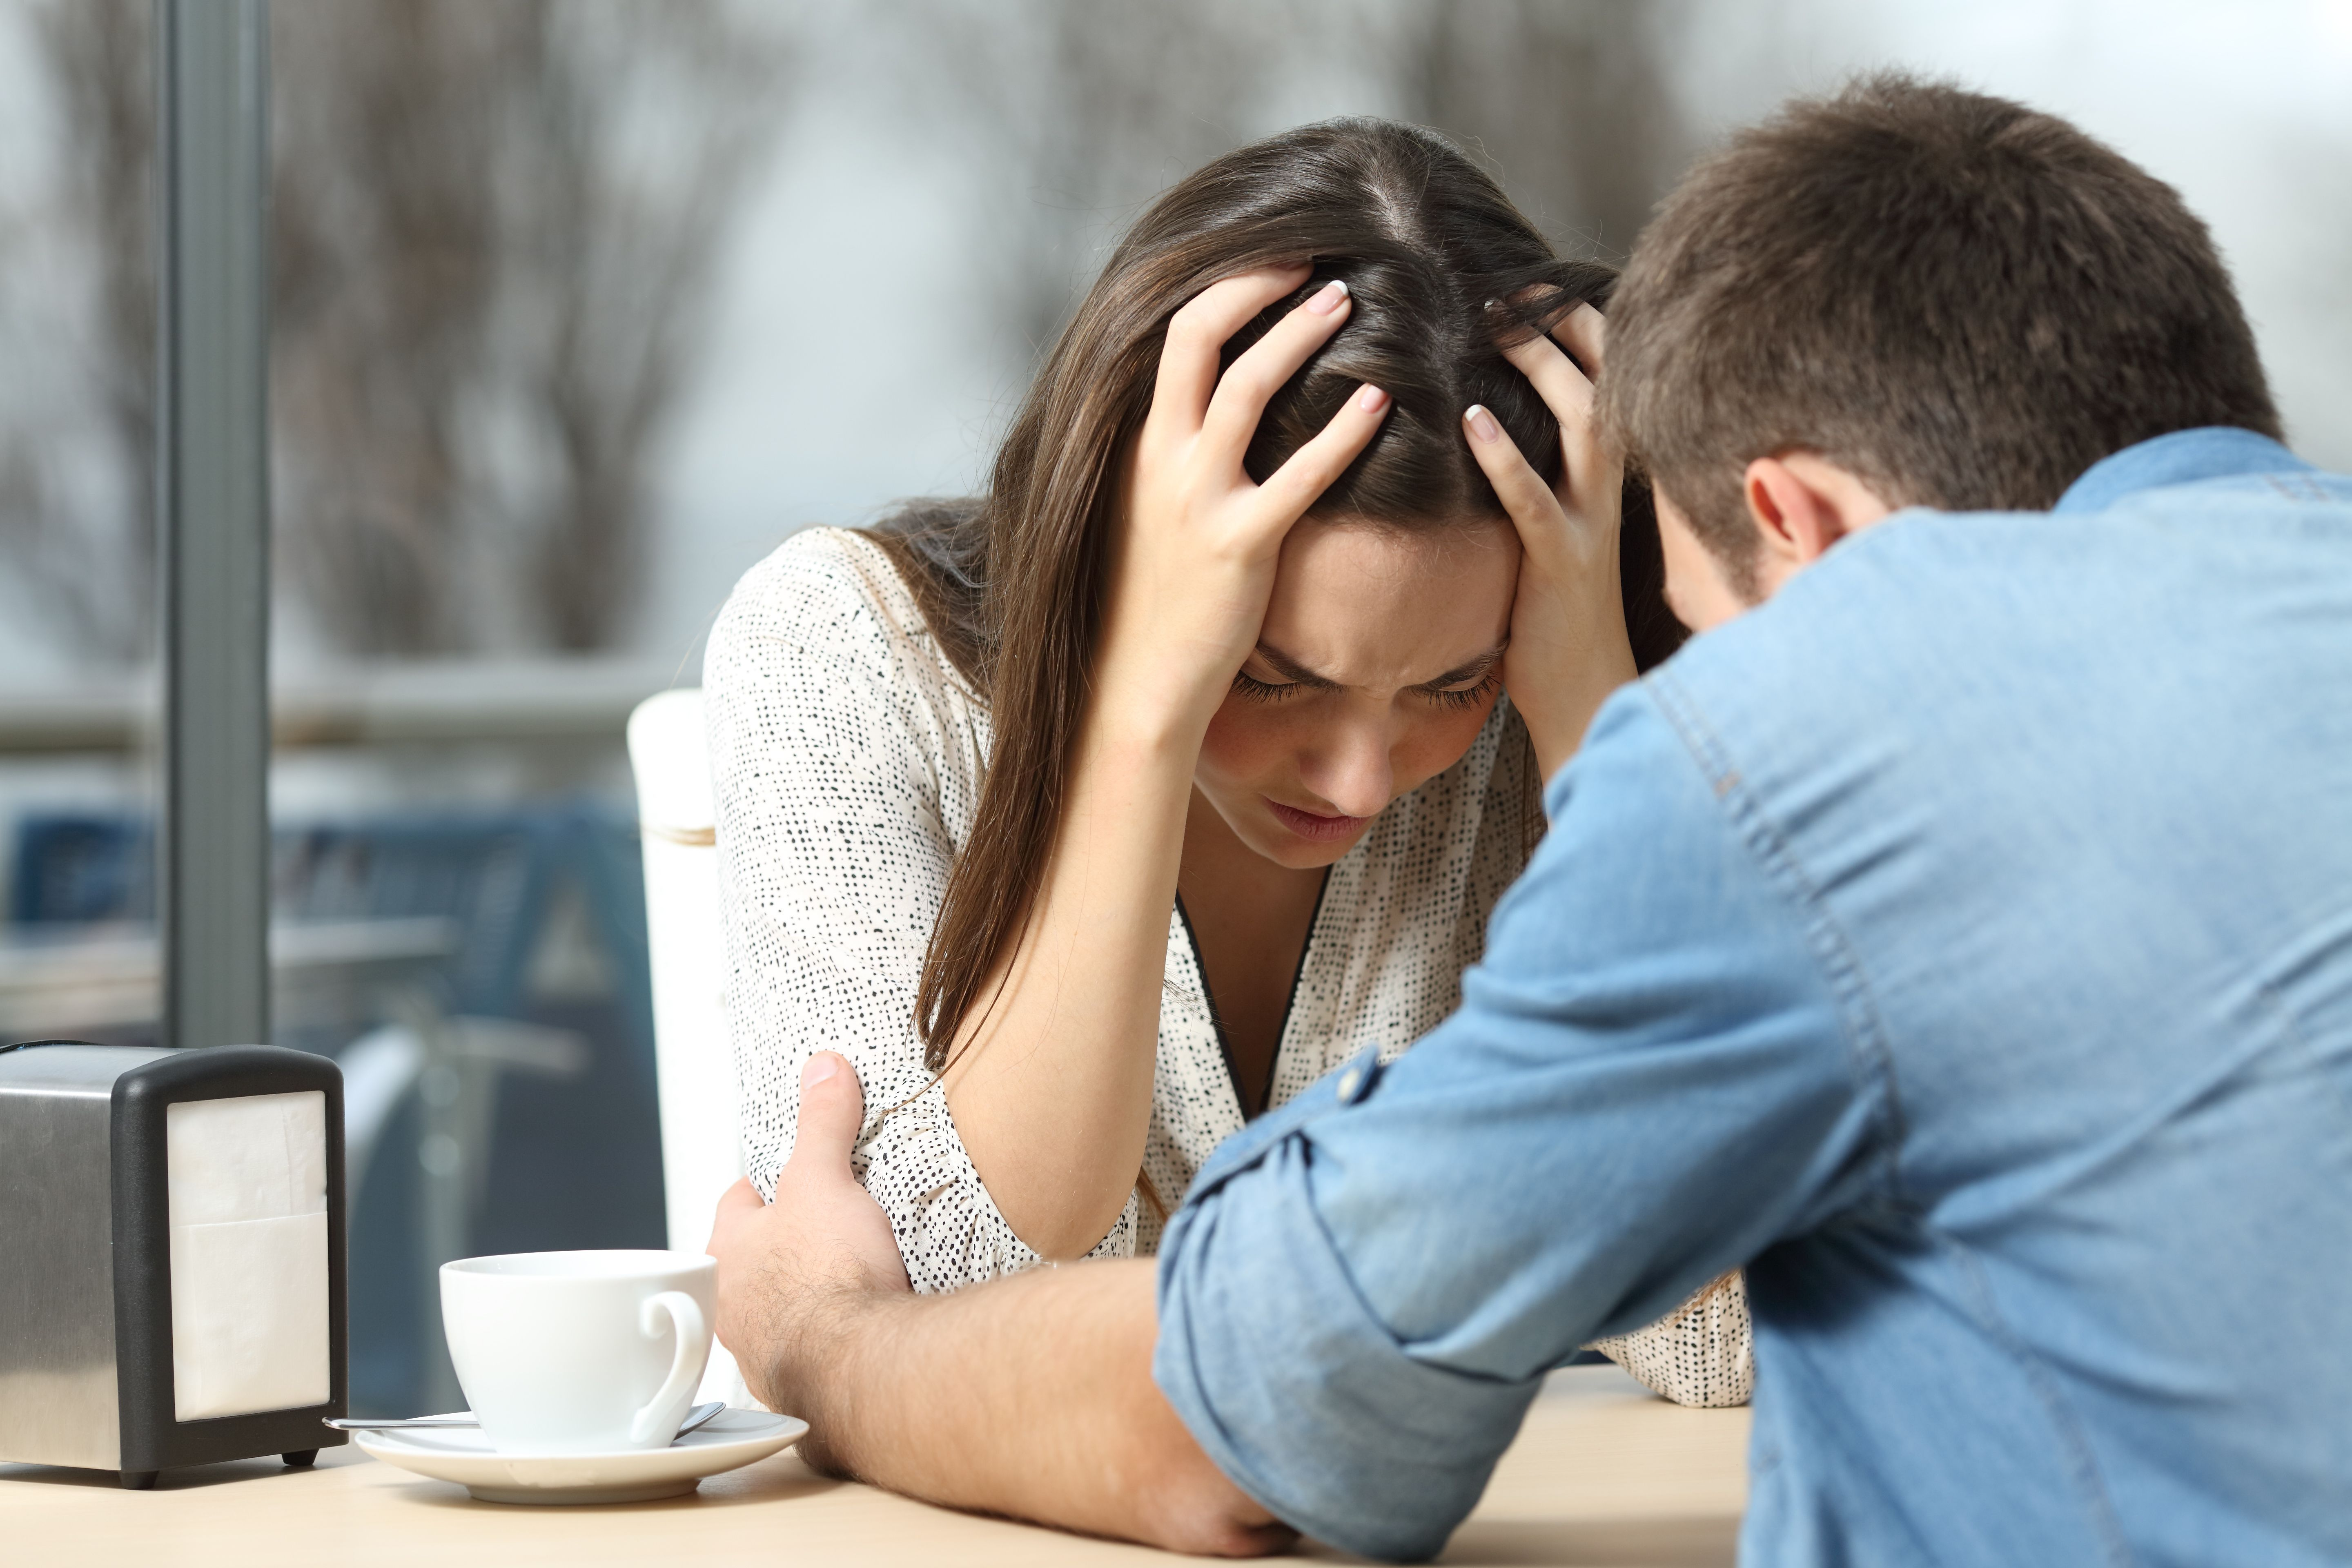 A couple fighting as they sort out their problems. | Photo: Shutterstock